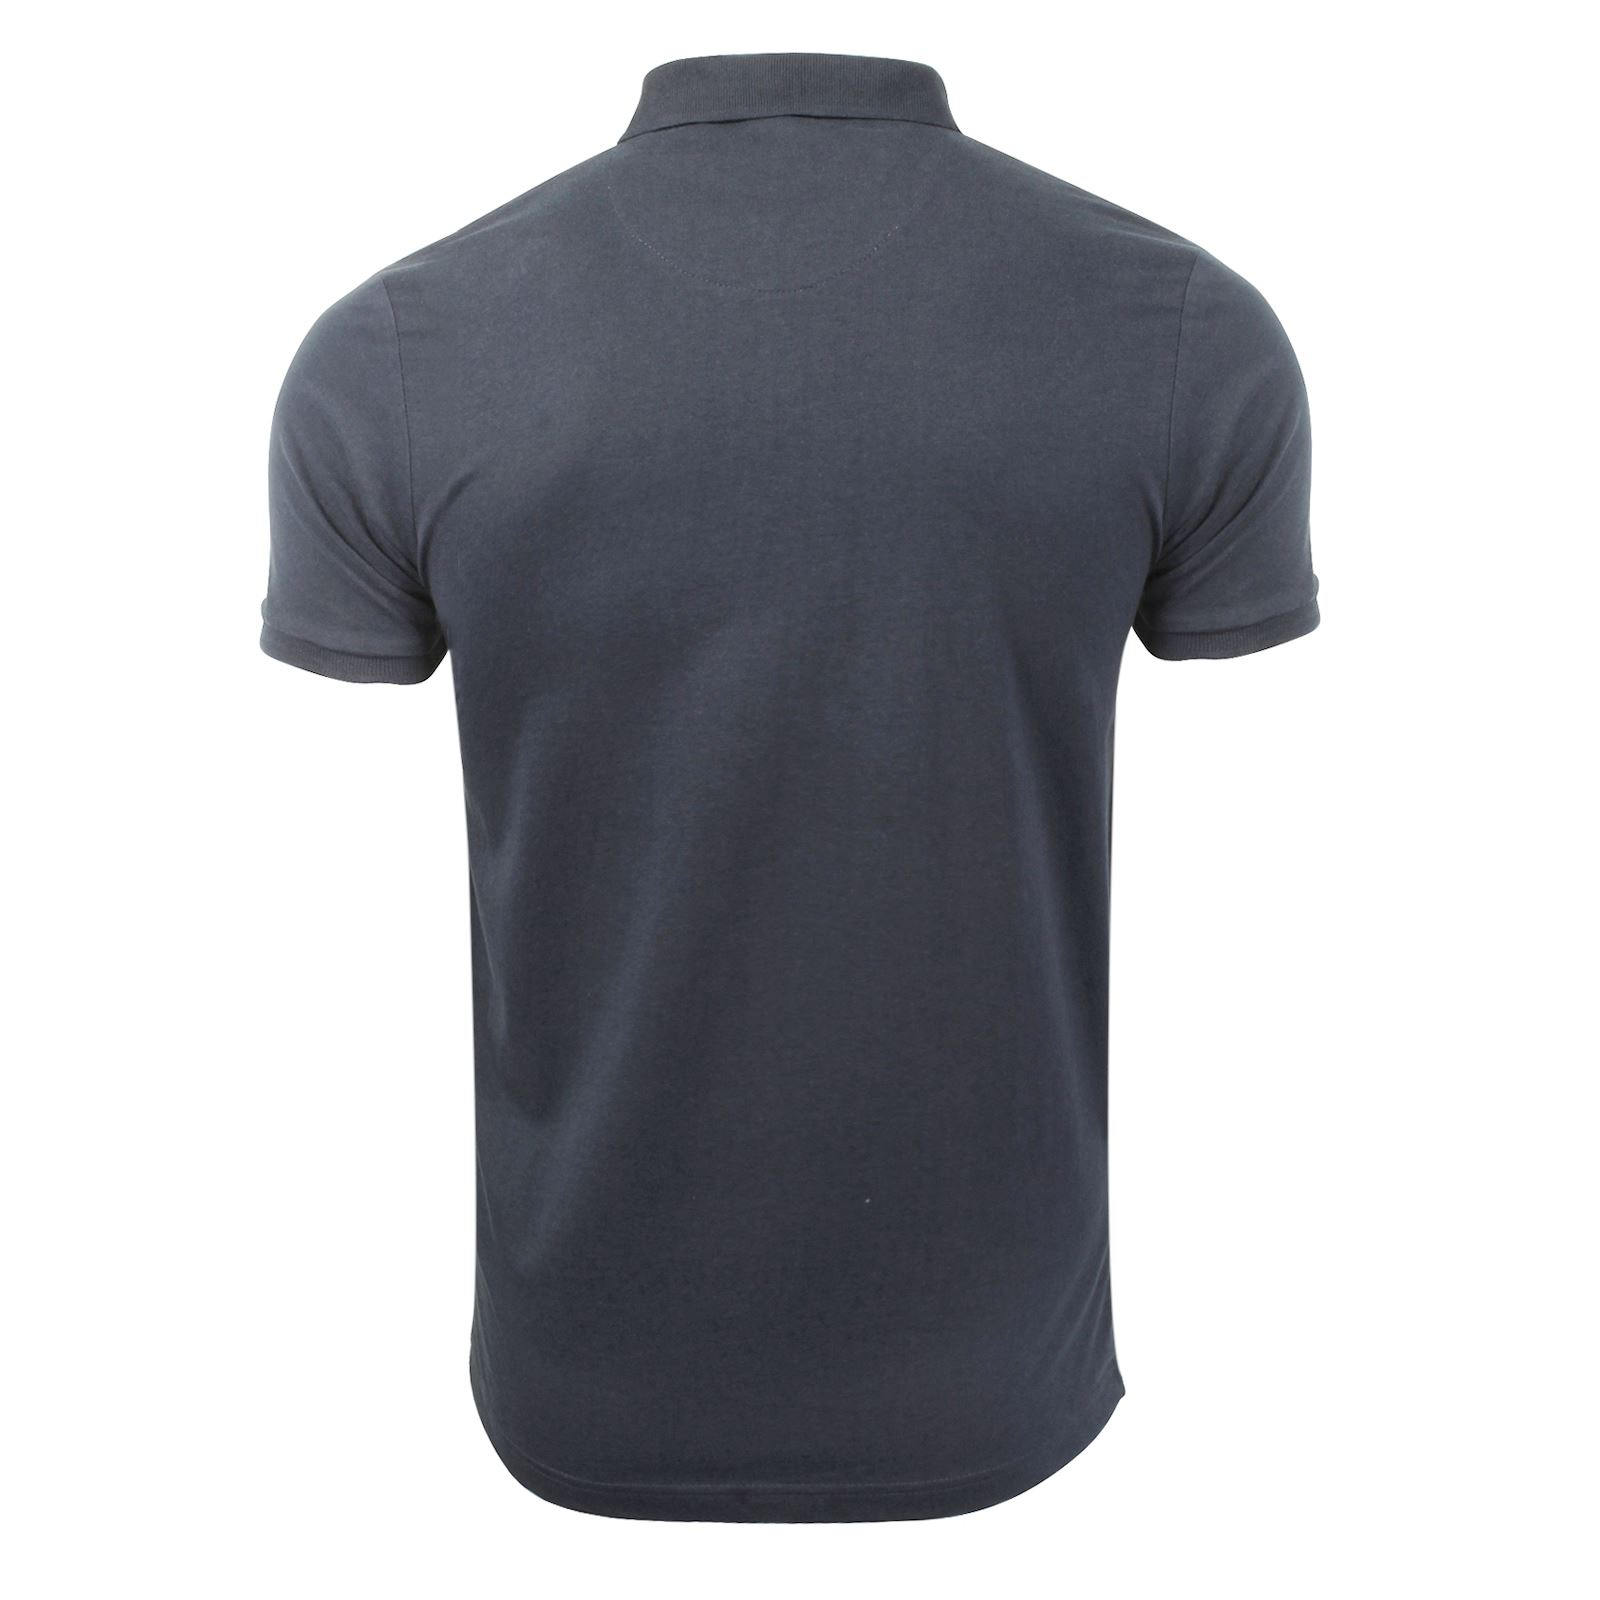 Mens-Polo-T-Shirt-Brave-Soul-Glover-Cotton-Collared-Short-Sleeve-Casual-Top thumbnail 96